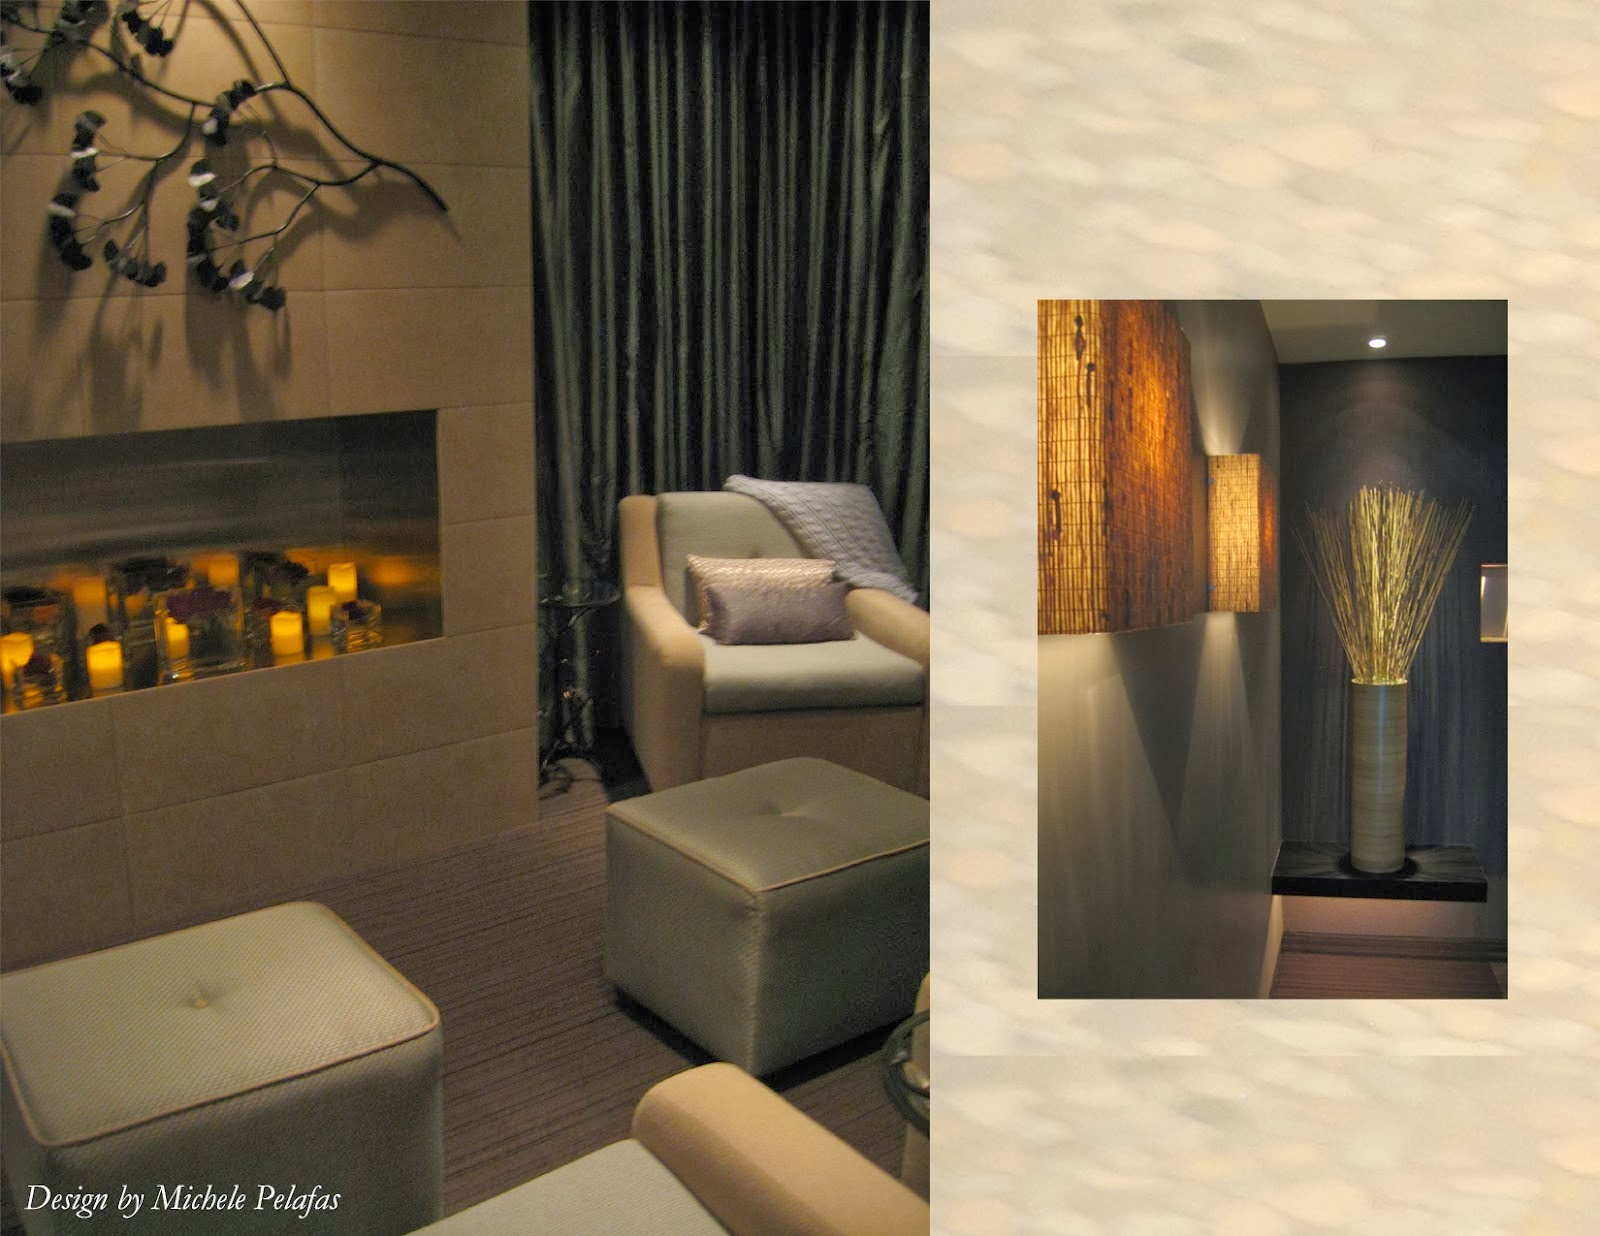 Michele Pelafas Spa Design